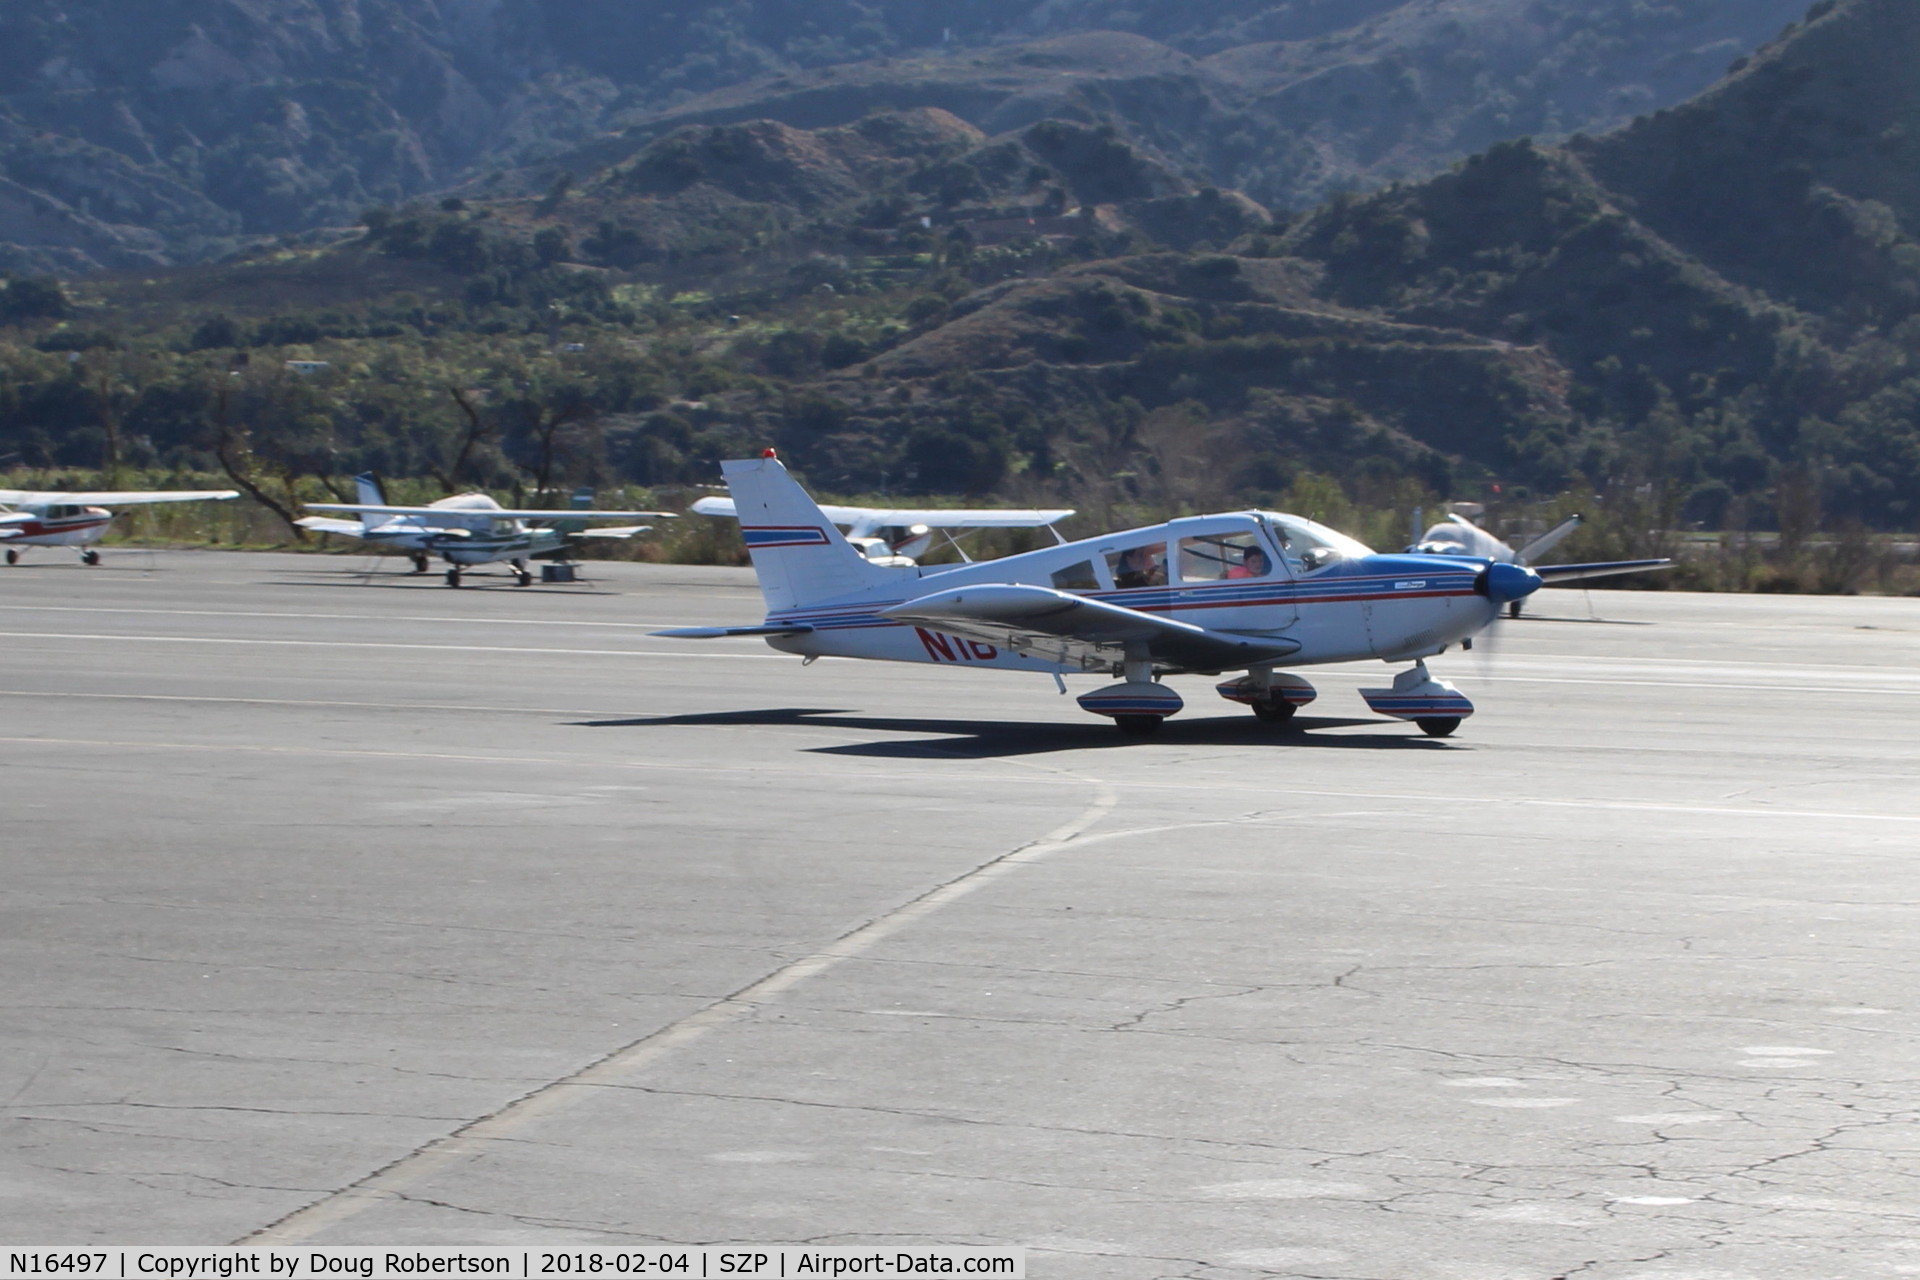 N16497, 1973 Piper PA-28-235 Cherokee Charger C/N 28-7310101, 1973 Piper PA-28-235 CHARGER, Lycoming O-540-D4B5 235 Hp, taxi to Rwy 04, Young Eagles flight